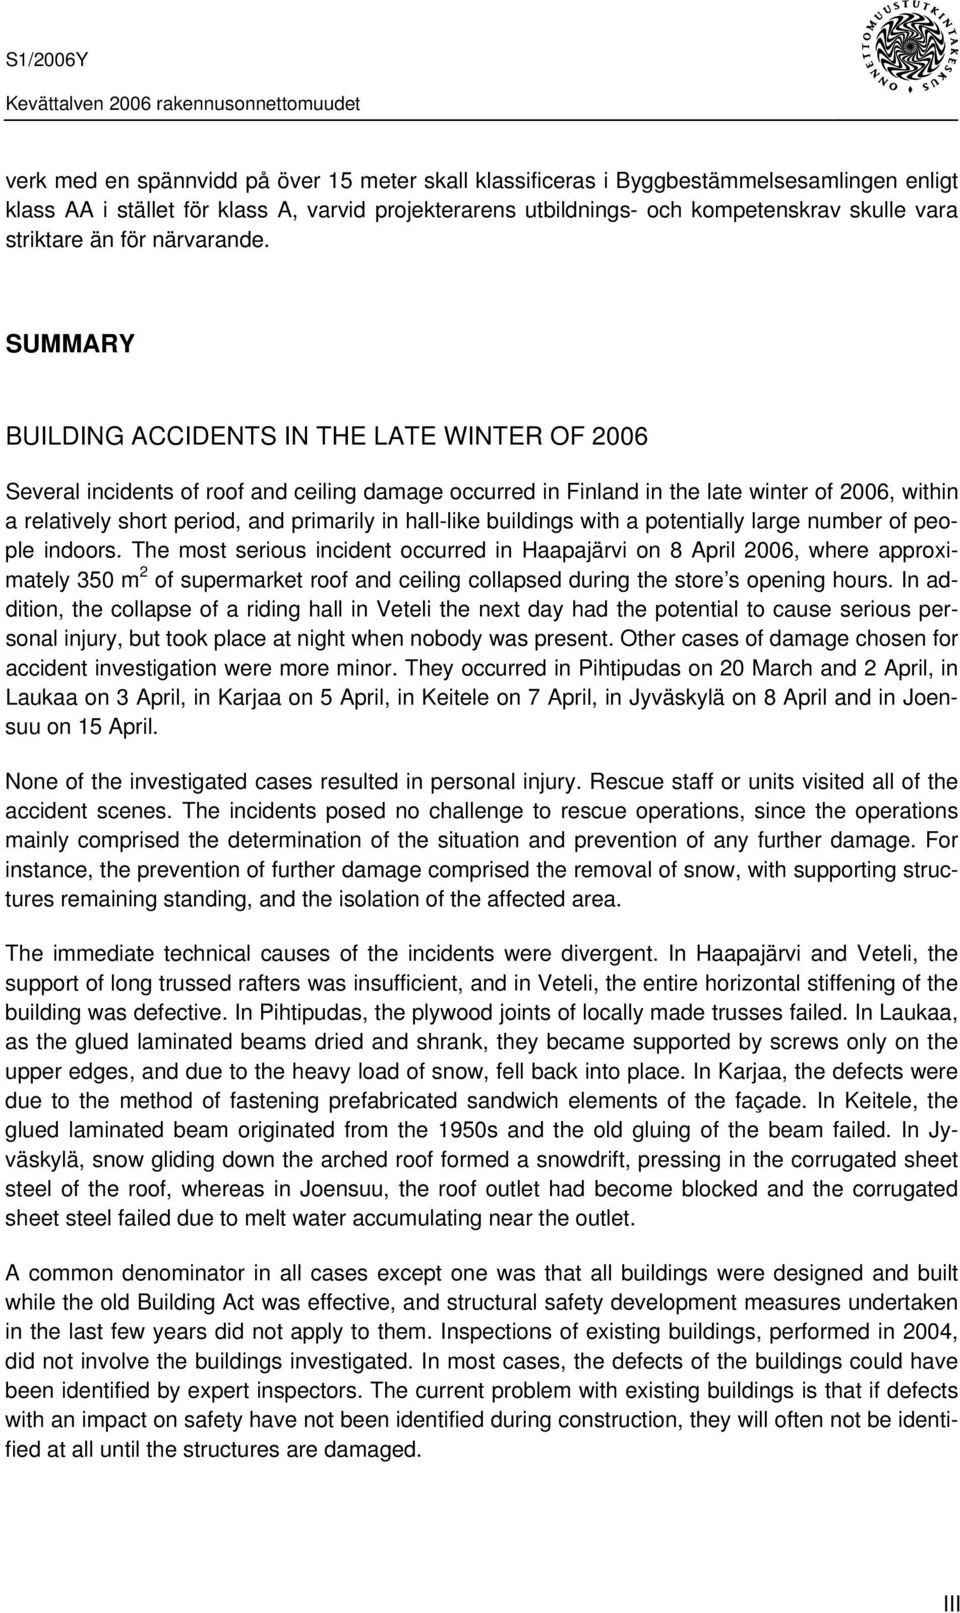 SUMMARY BUILDING ACCIDENTS IN THE LATE WINTER OF 2006 Several incidents of roof and ceiling damage occurred in Finland in the late winter of 2006, within a relatively short period, and primarily in